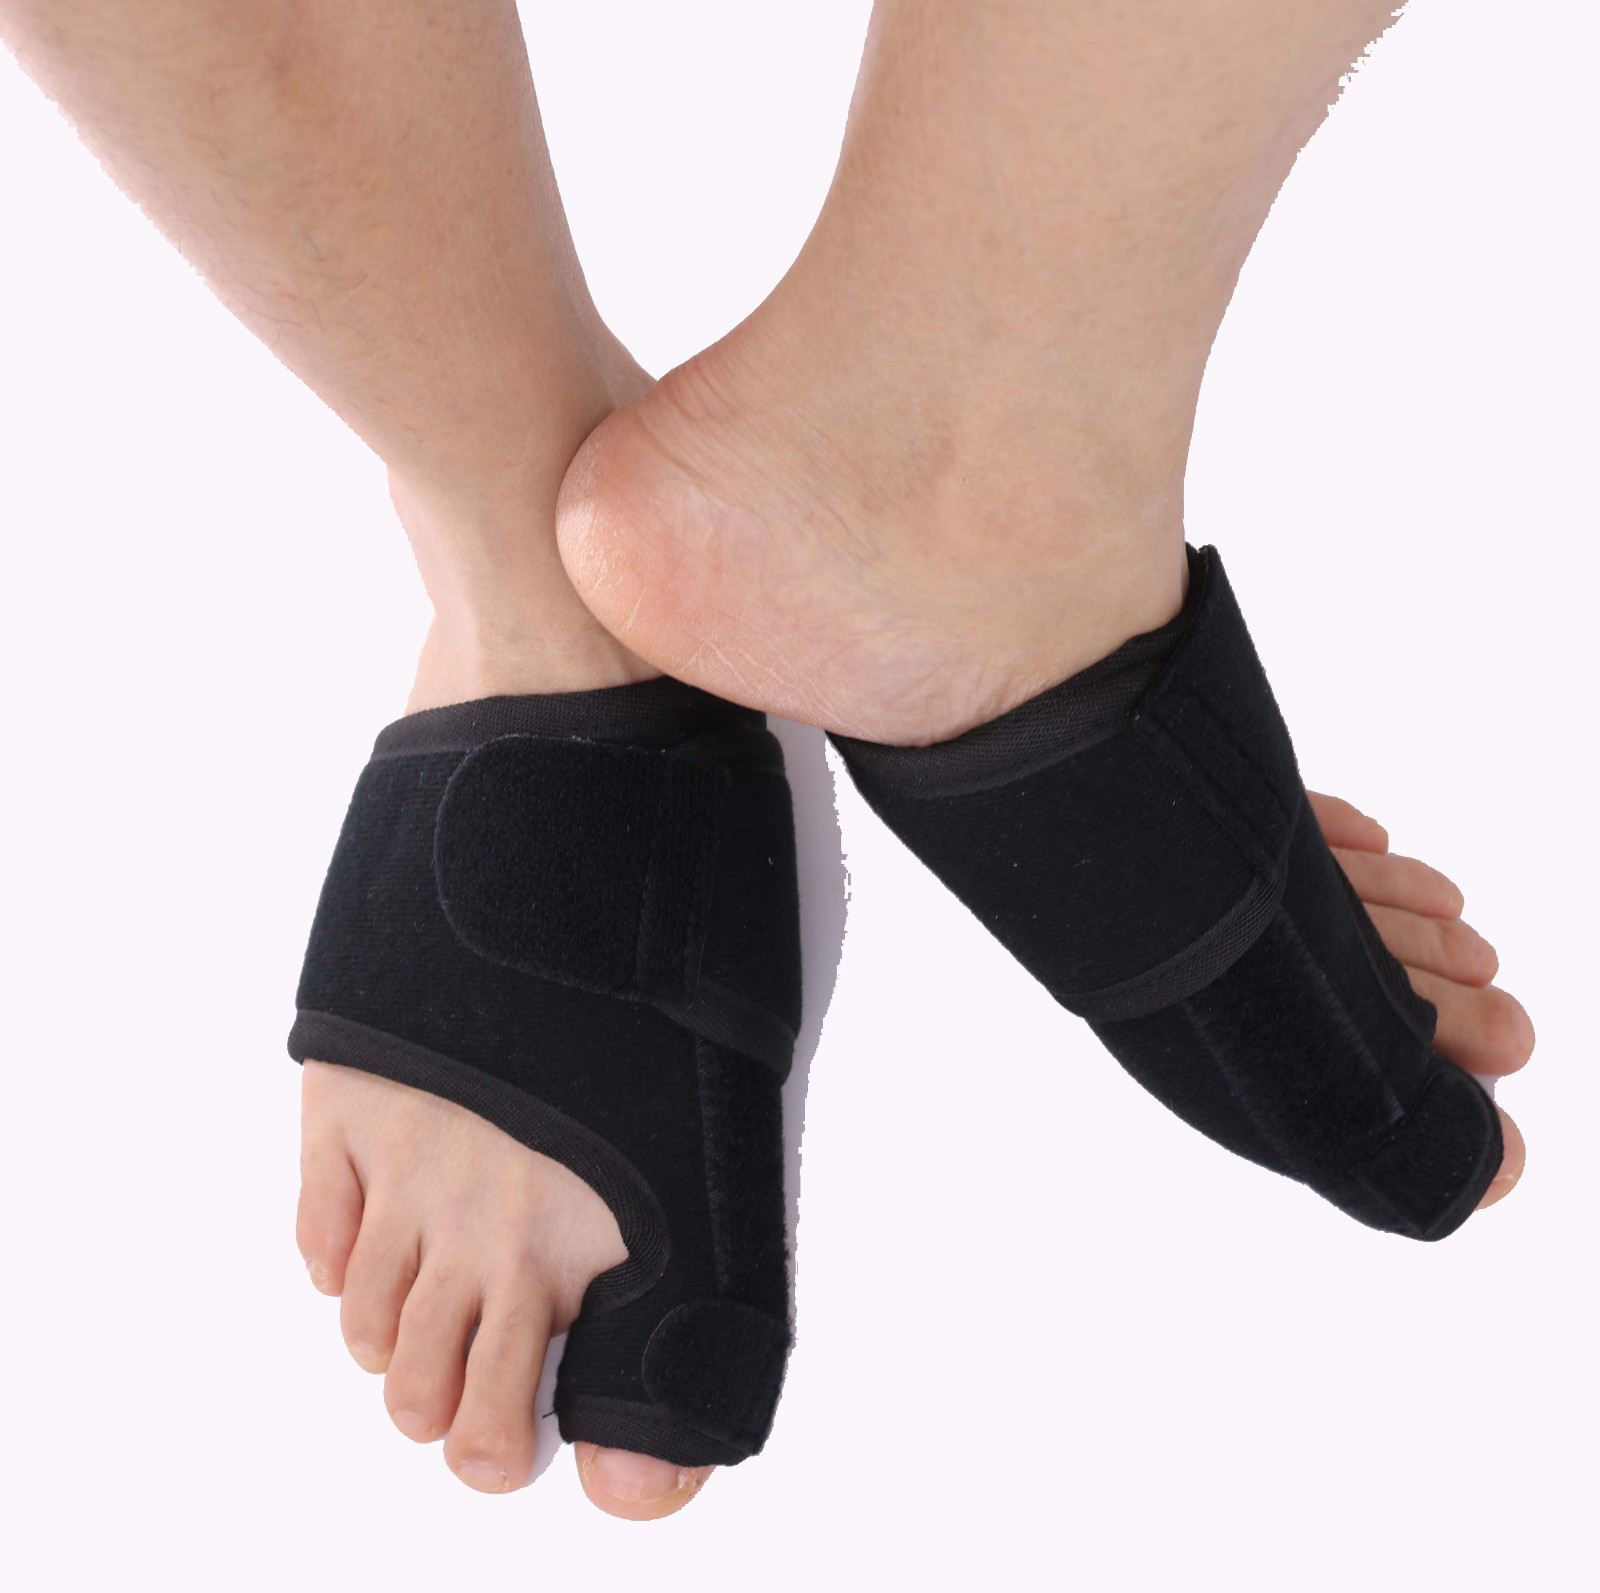 S-King-Professional Hallux Valgus Brace Hallux Valgus Correction | S-king-6